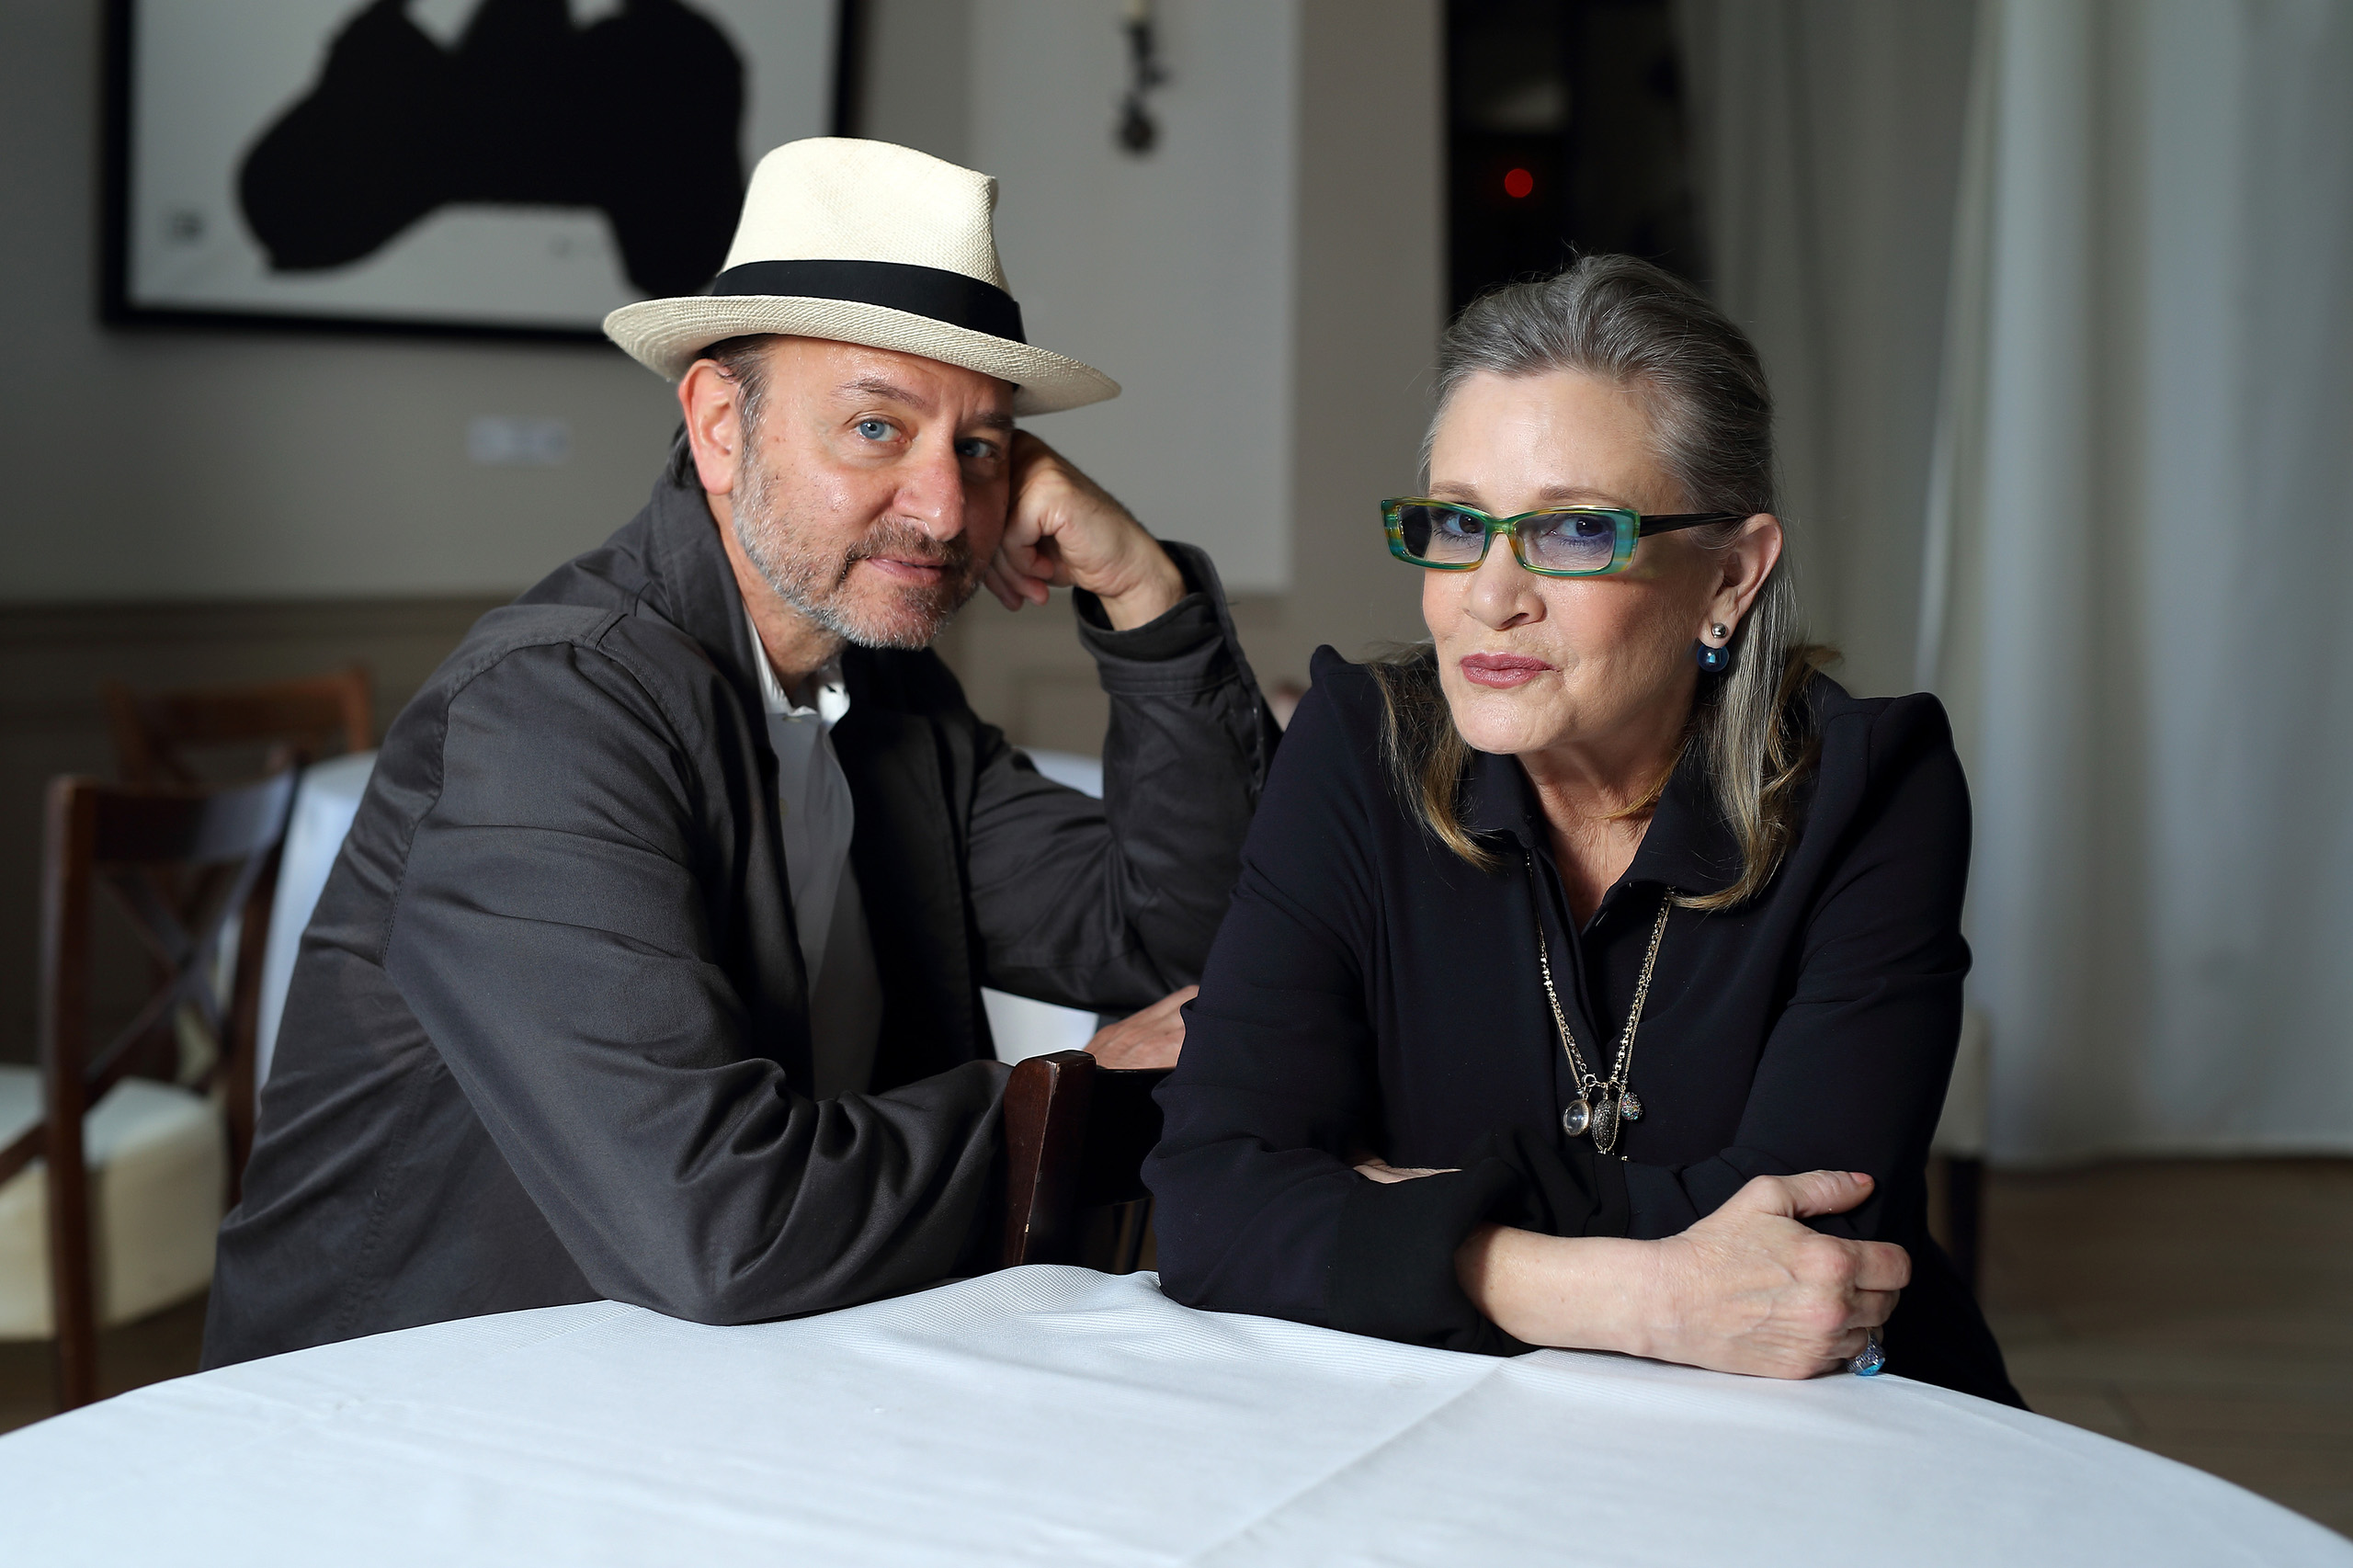 Carrie Fisher and Fisher Stevens attend a photocall for  Bright Lights  during The 69th Annual Cannes Film Festival in France on May 15, 2016.